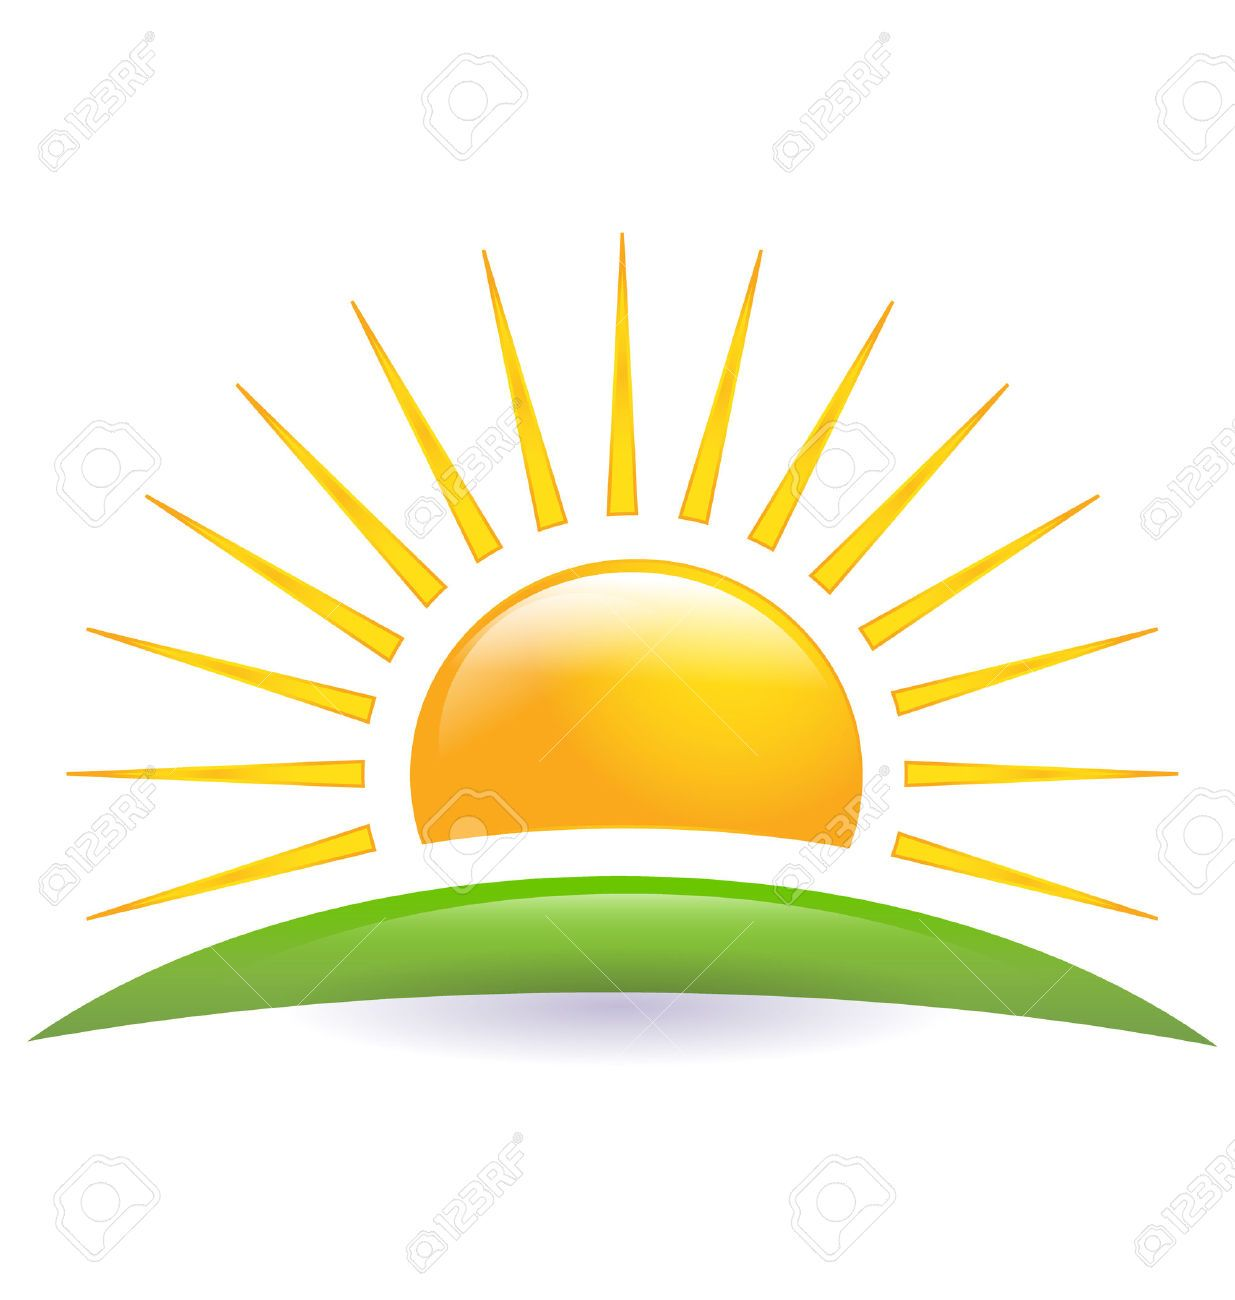 Green hill with sun rays clipart.